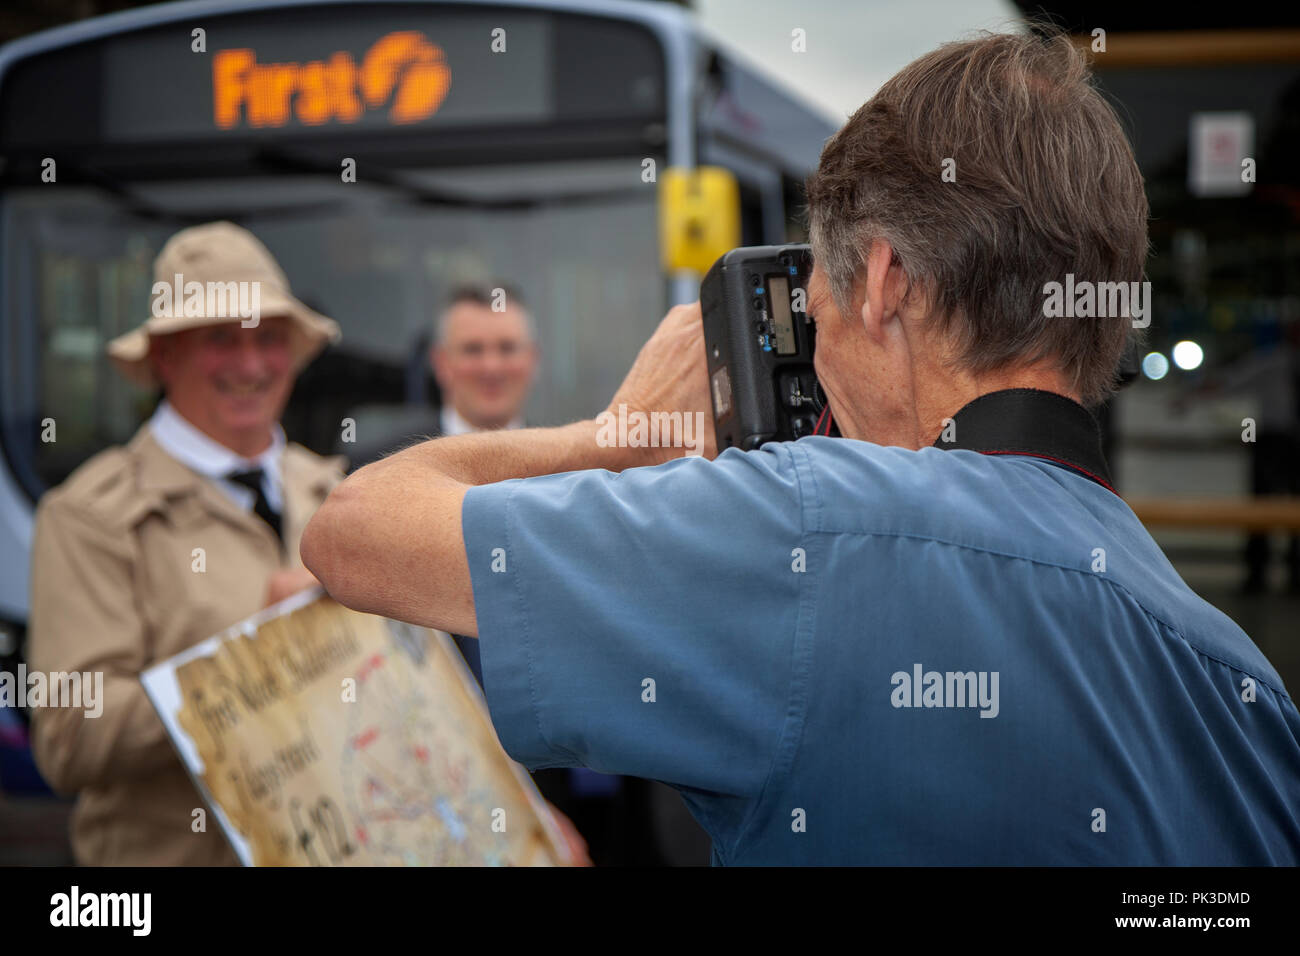 Professional Photographer taking pictures of a PR story in Huddersfield, West Yorkshire, England - Stock Image